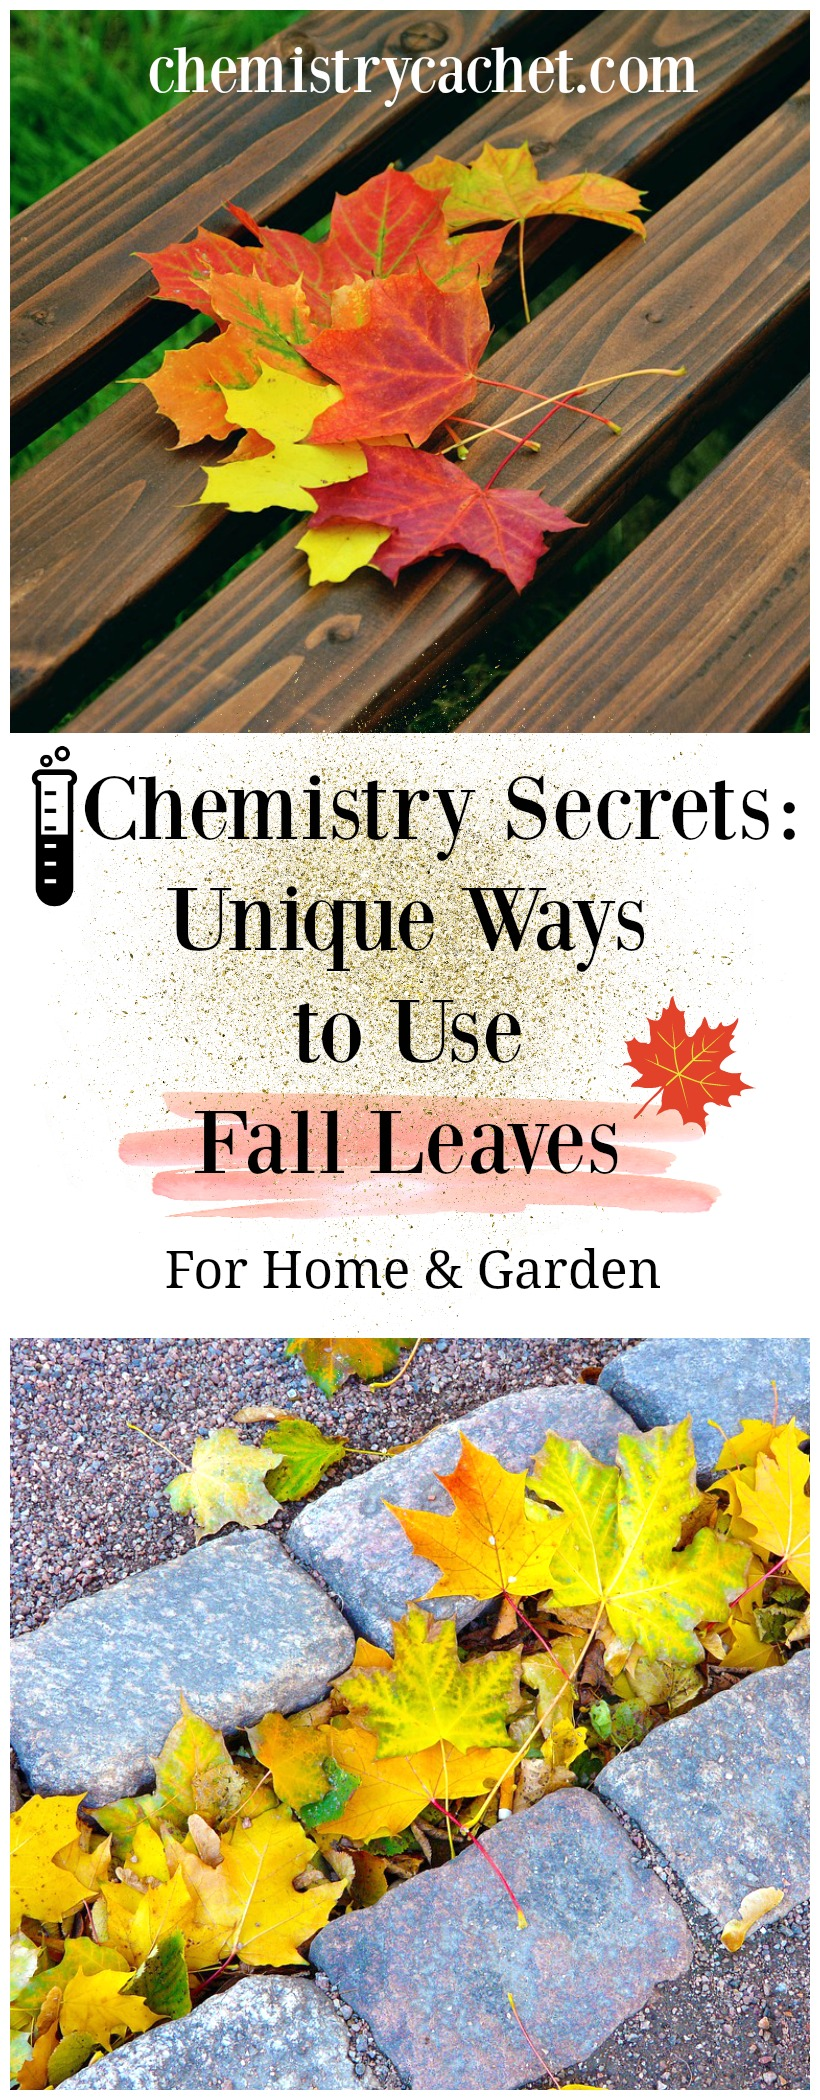 Chemistry Secrets Unique Ways to Use Fall Leaves. Use fall leaves for your garden, compost, around the home, and more on chemistrycachet.com